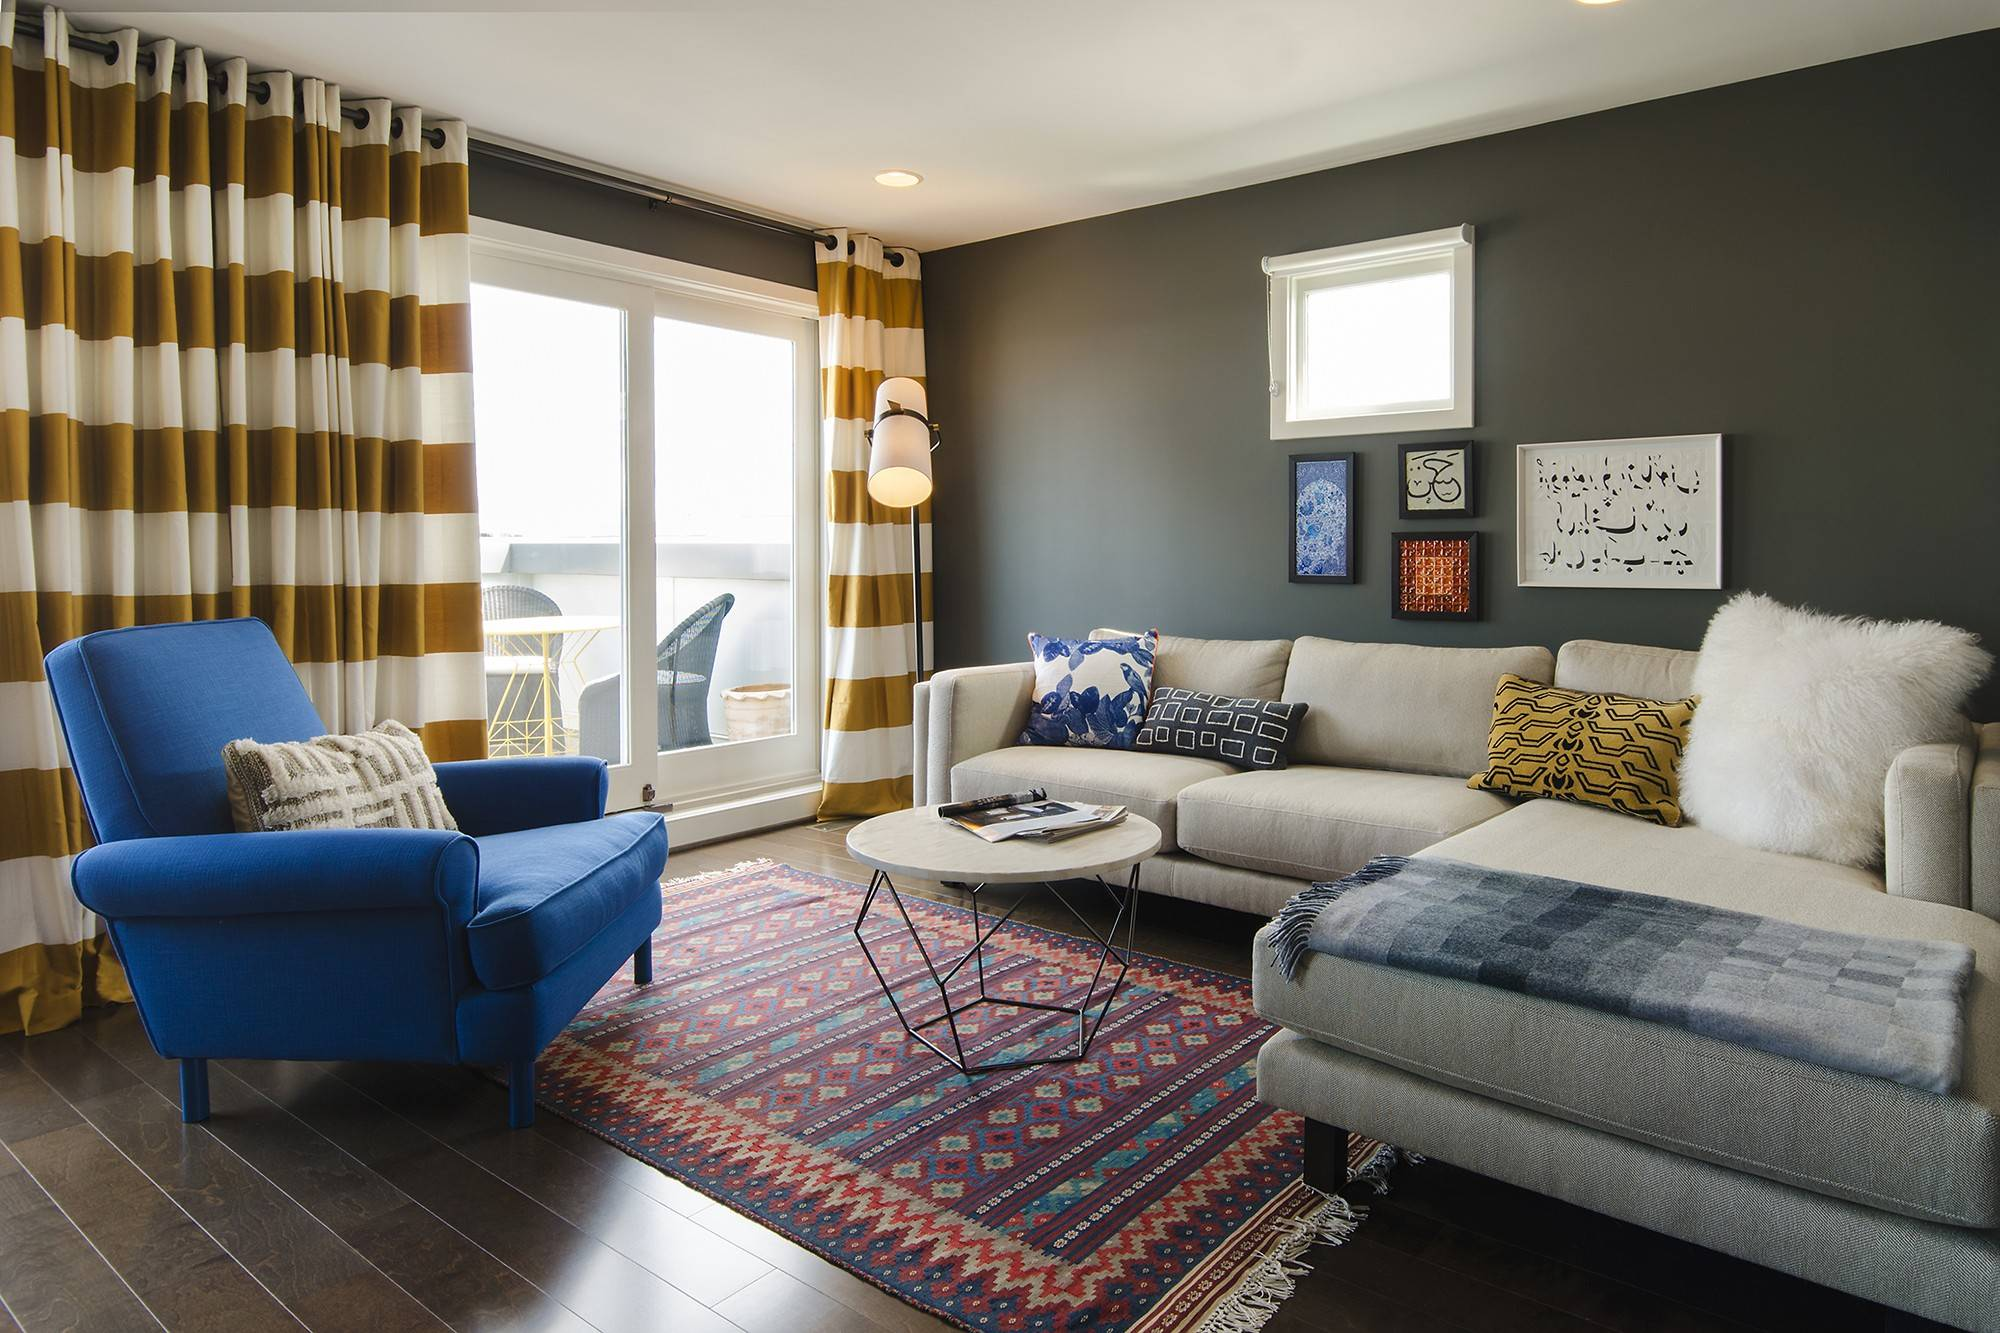 A tight layout gets more wiggle room with a sectional, says designer Nicole Lanteri, who designed this living room.